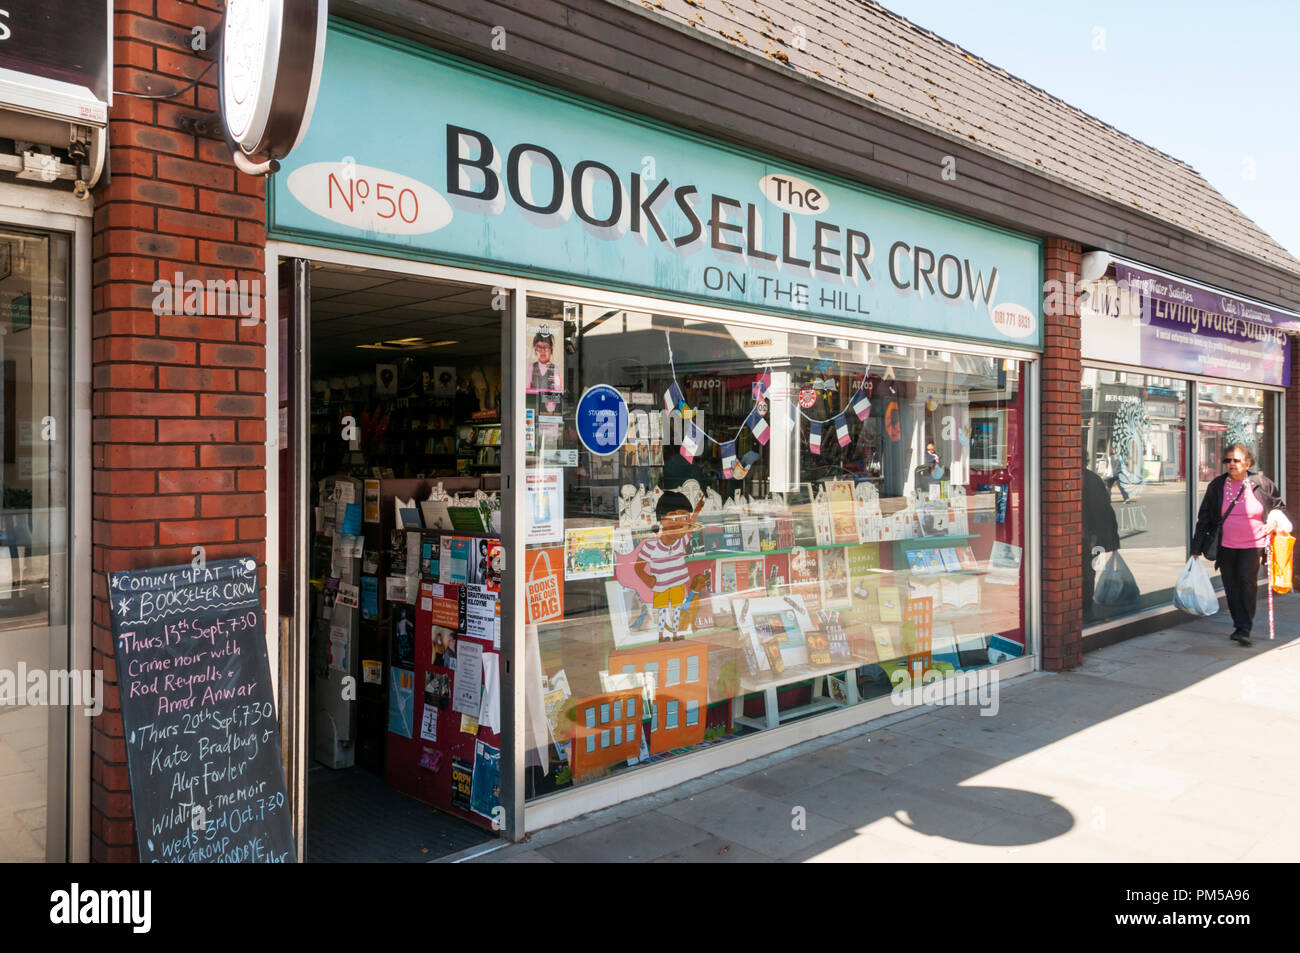 The Bookseller Crow on the Hill independent bookshop in Crystal Palace, South London. - Stock Image